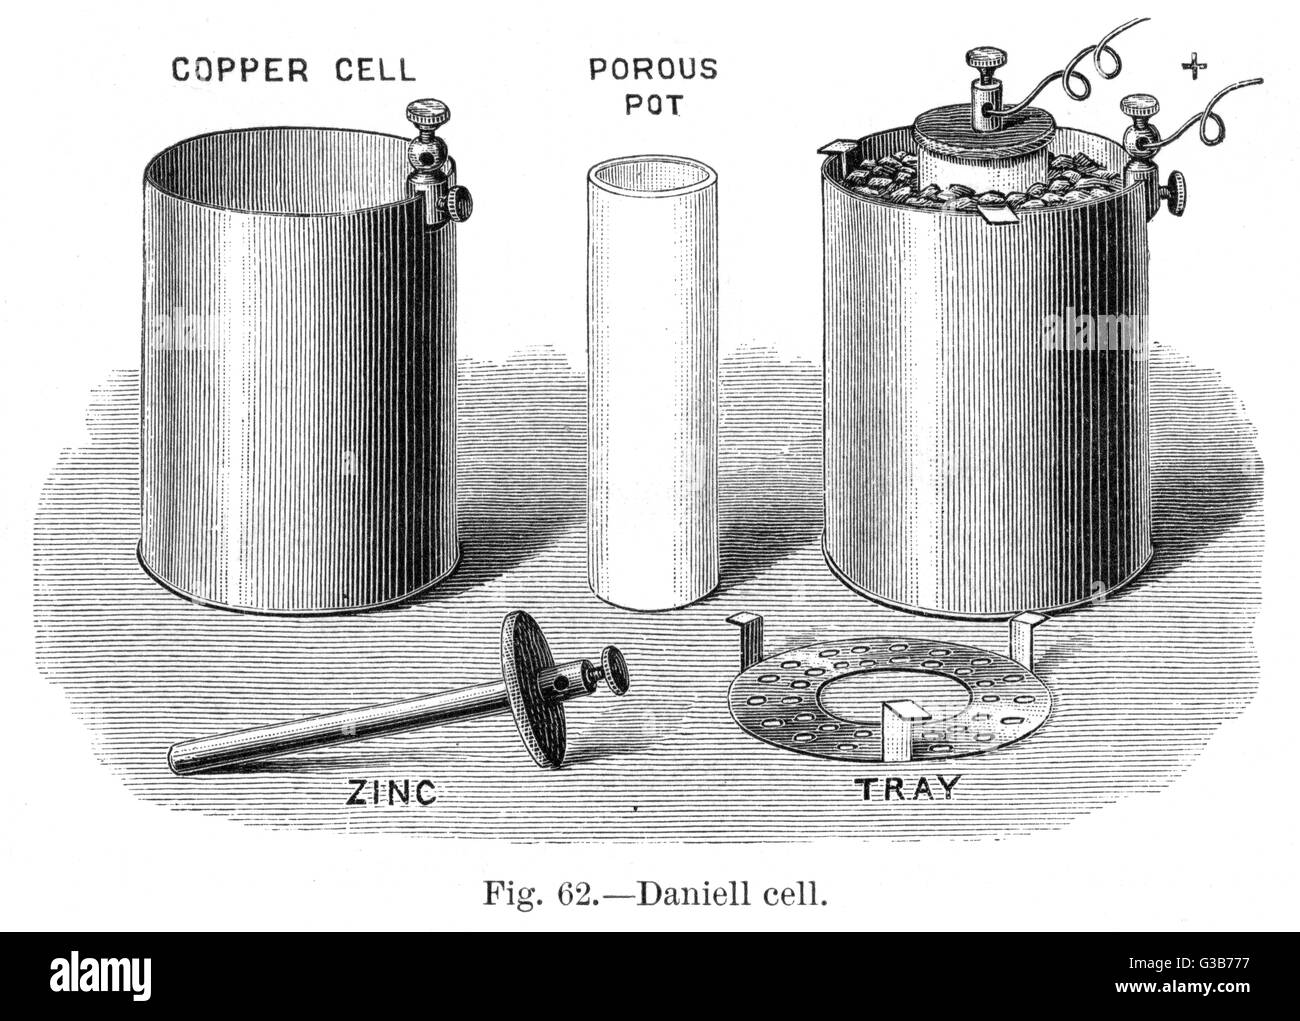 DANIELL CELL  Invented in 1836 by John- Frederic Daniell, English  chemist and physicist, using  zinc and copper. - Stock Image